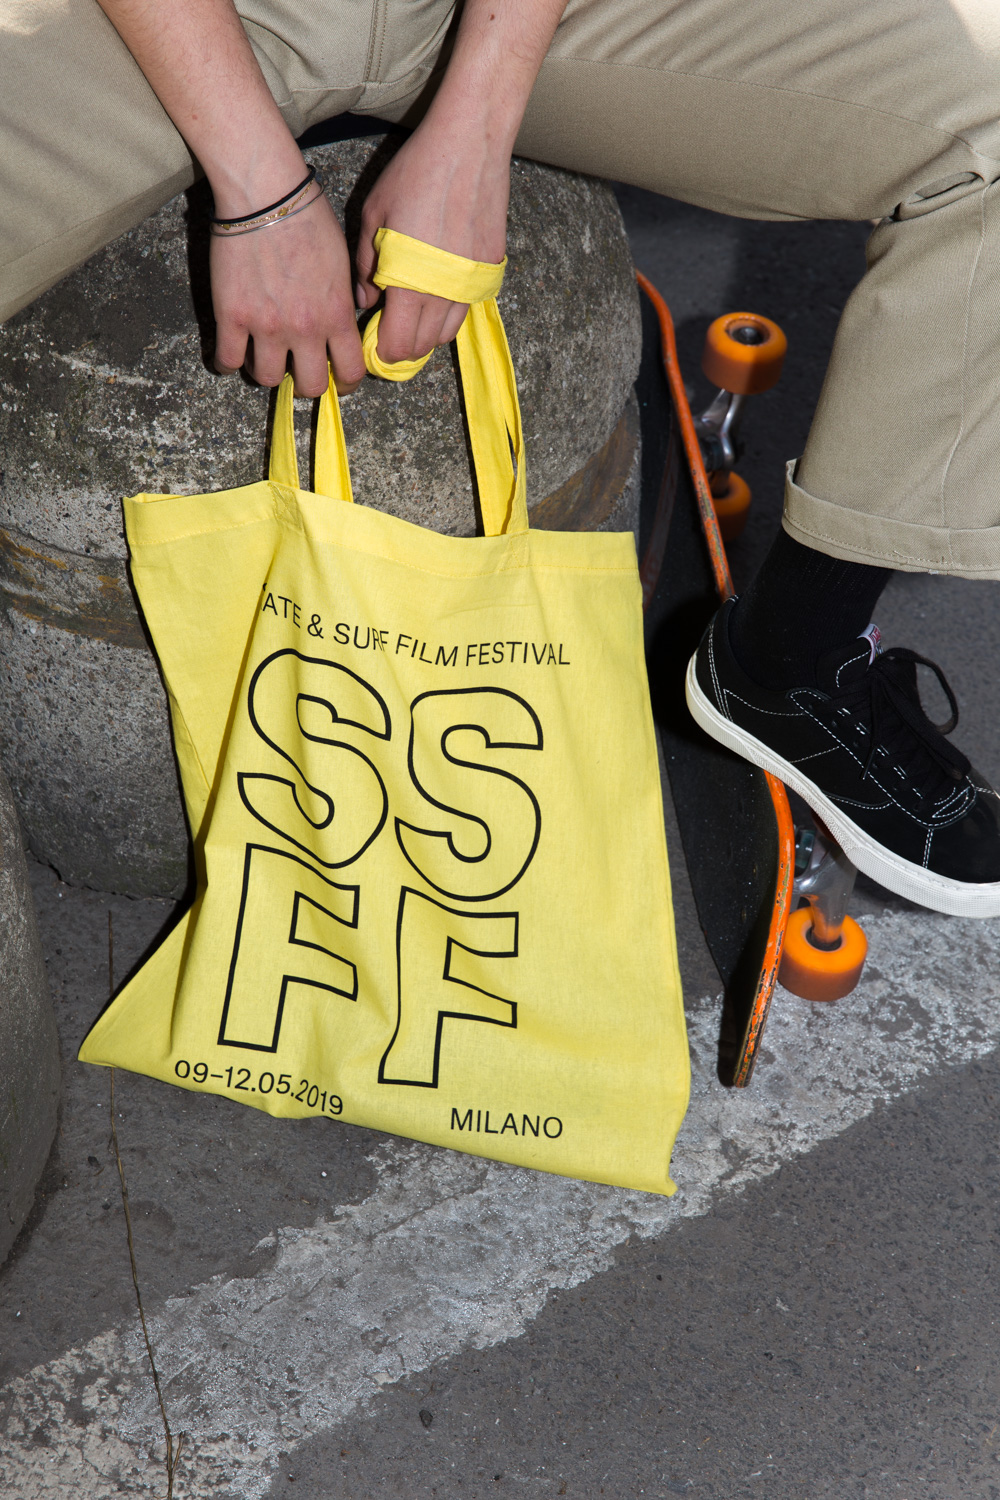 ssff-2019-merch-ptwschool-editorial-11.jpg